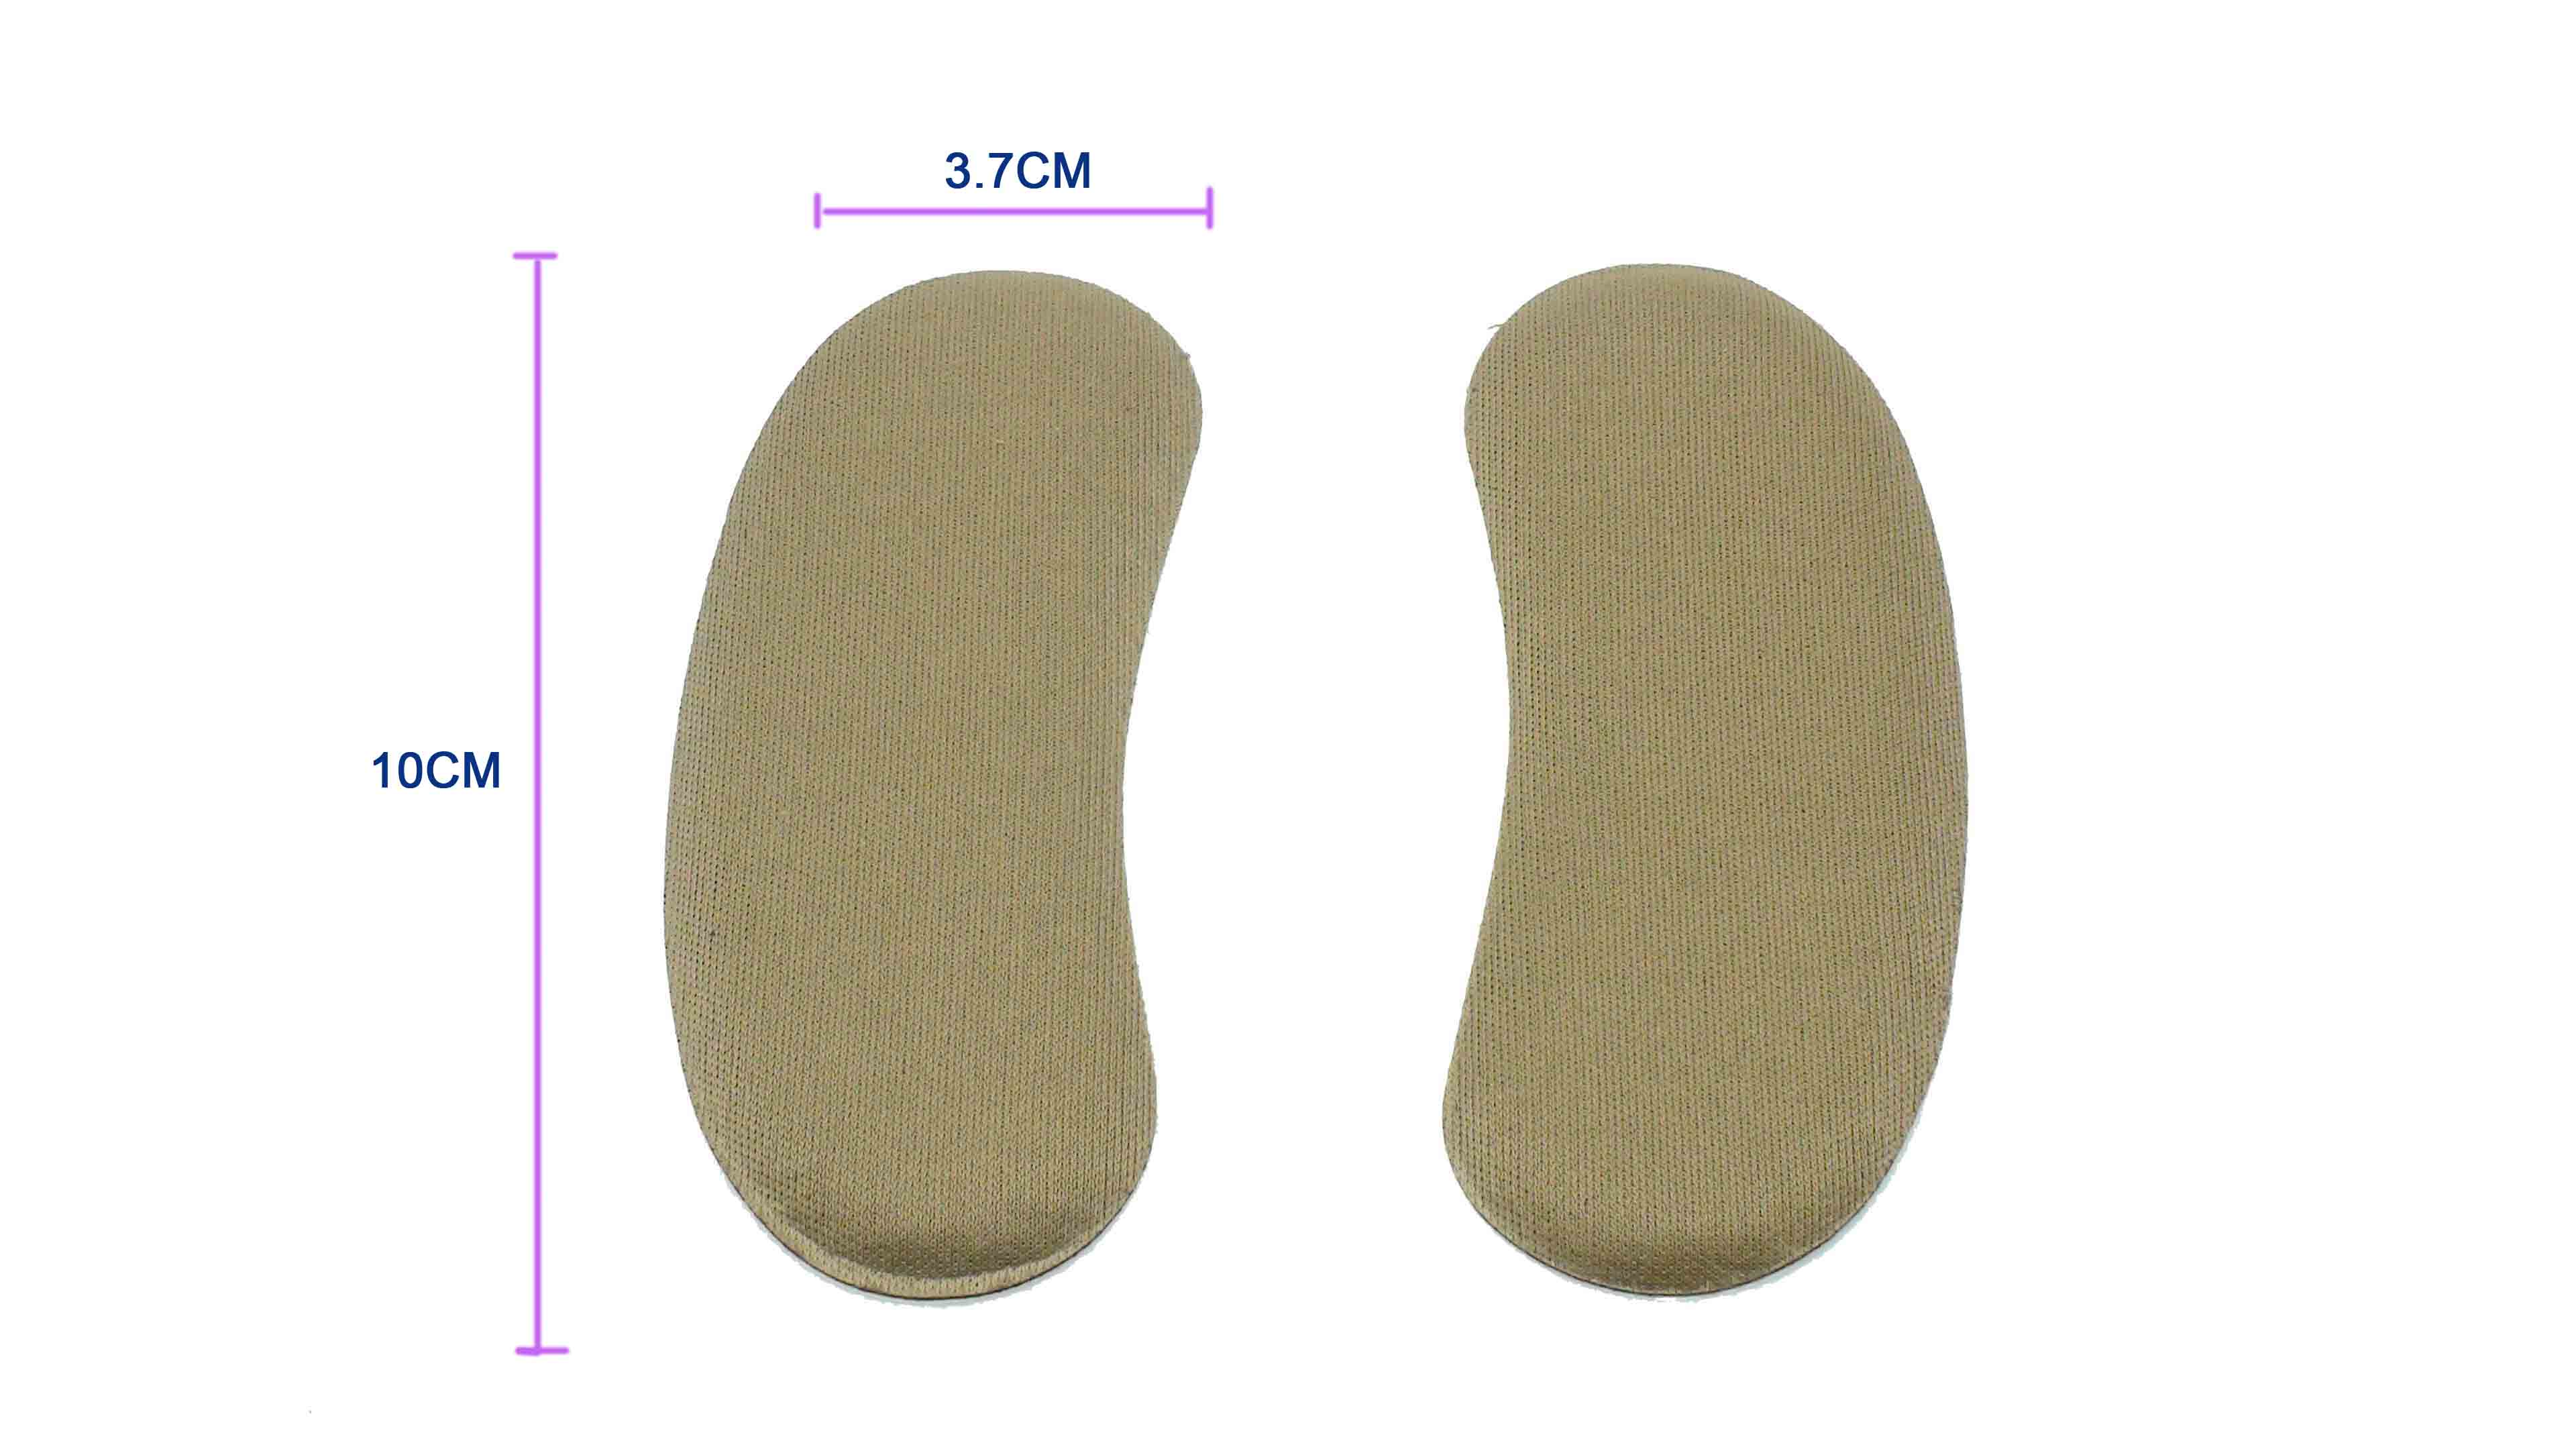 Aliexpress Buy 2Pcs Shoe Back Heel Inserts Insoles Pads